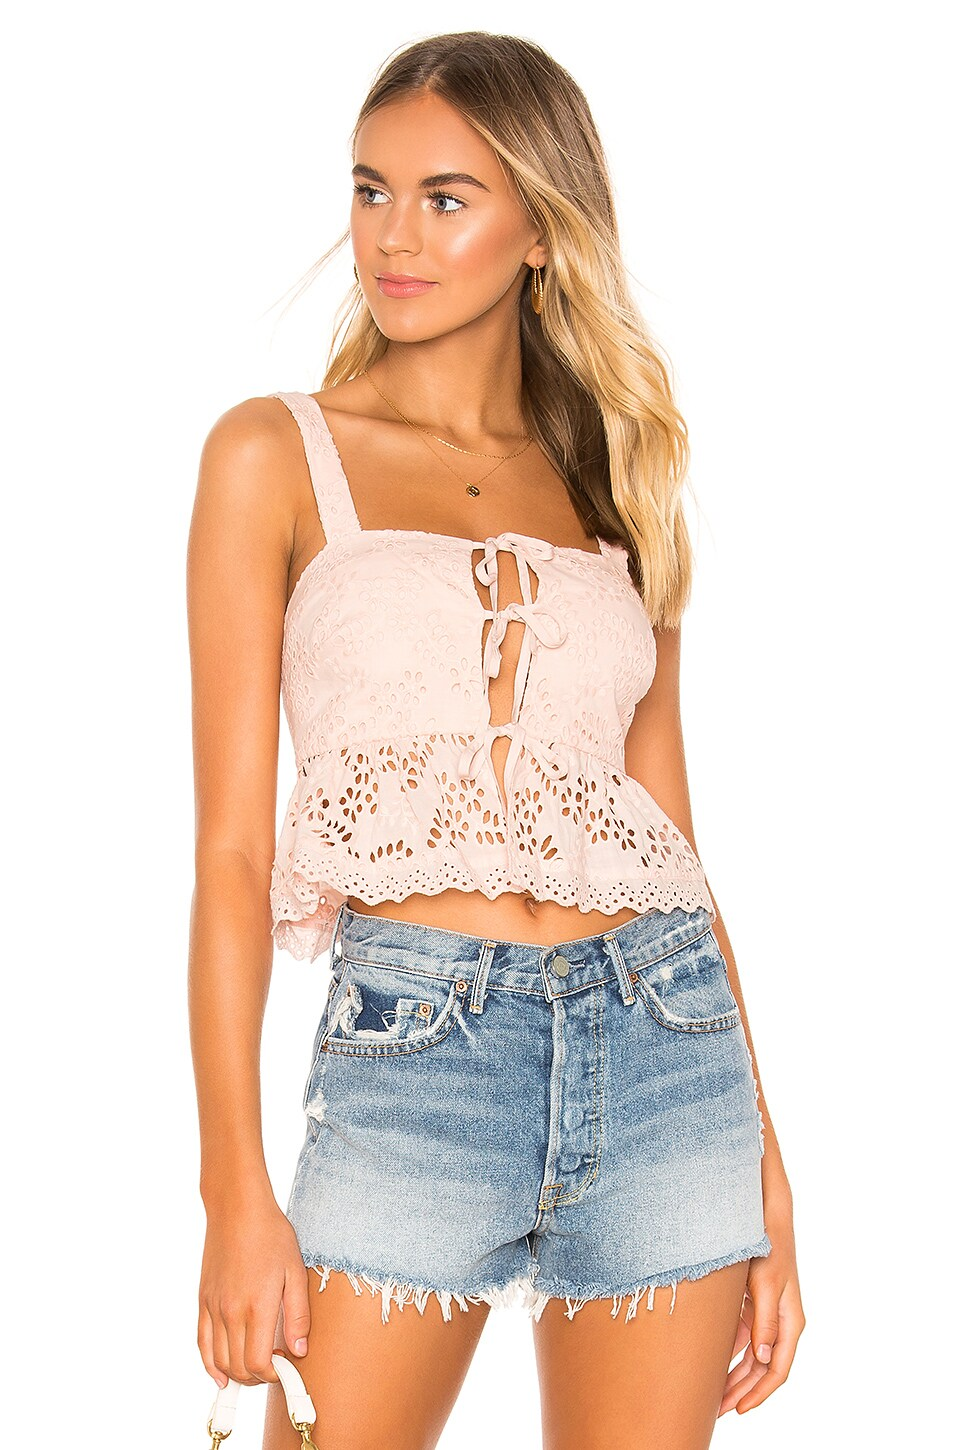 Tularosa Resort Fling Top in Blush